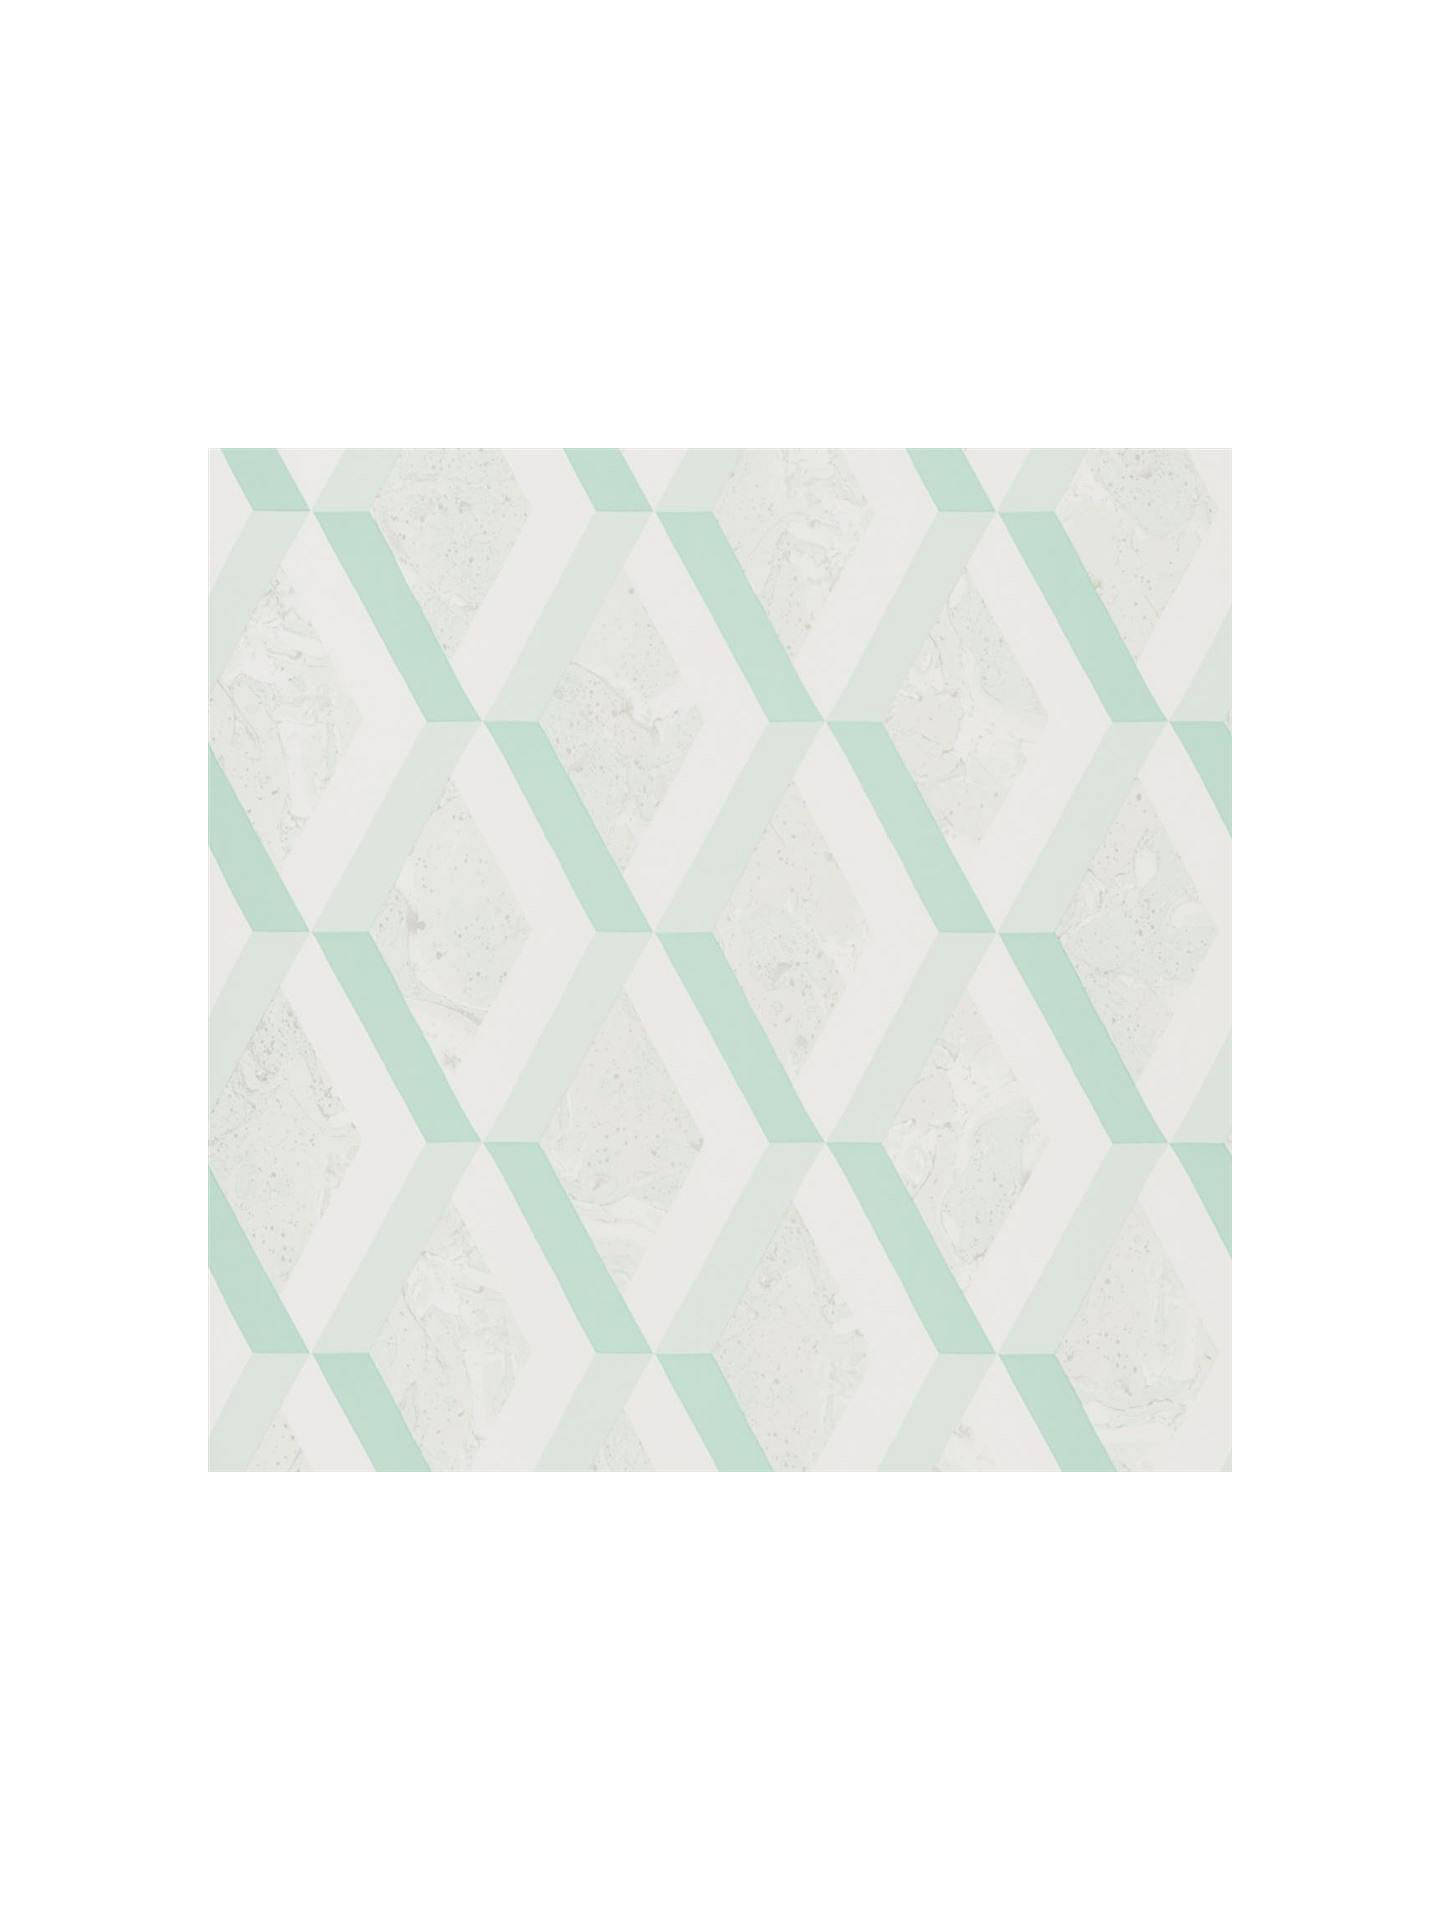 BuyDesigners Guild Jourdain Wallpaper, Jade PDG1054/07 Online at johnlewis.com